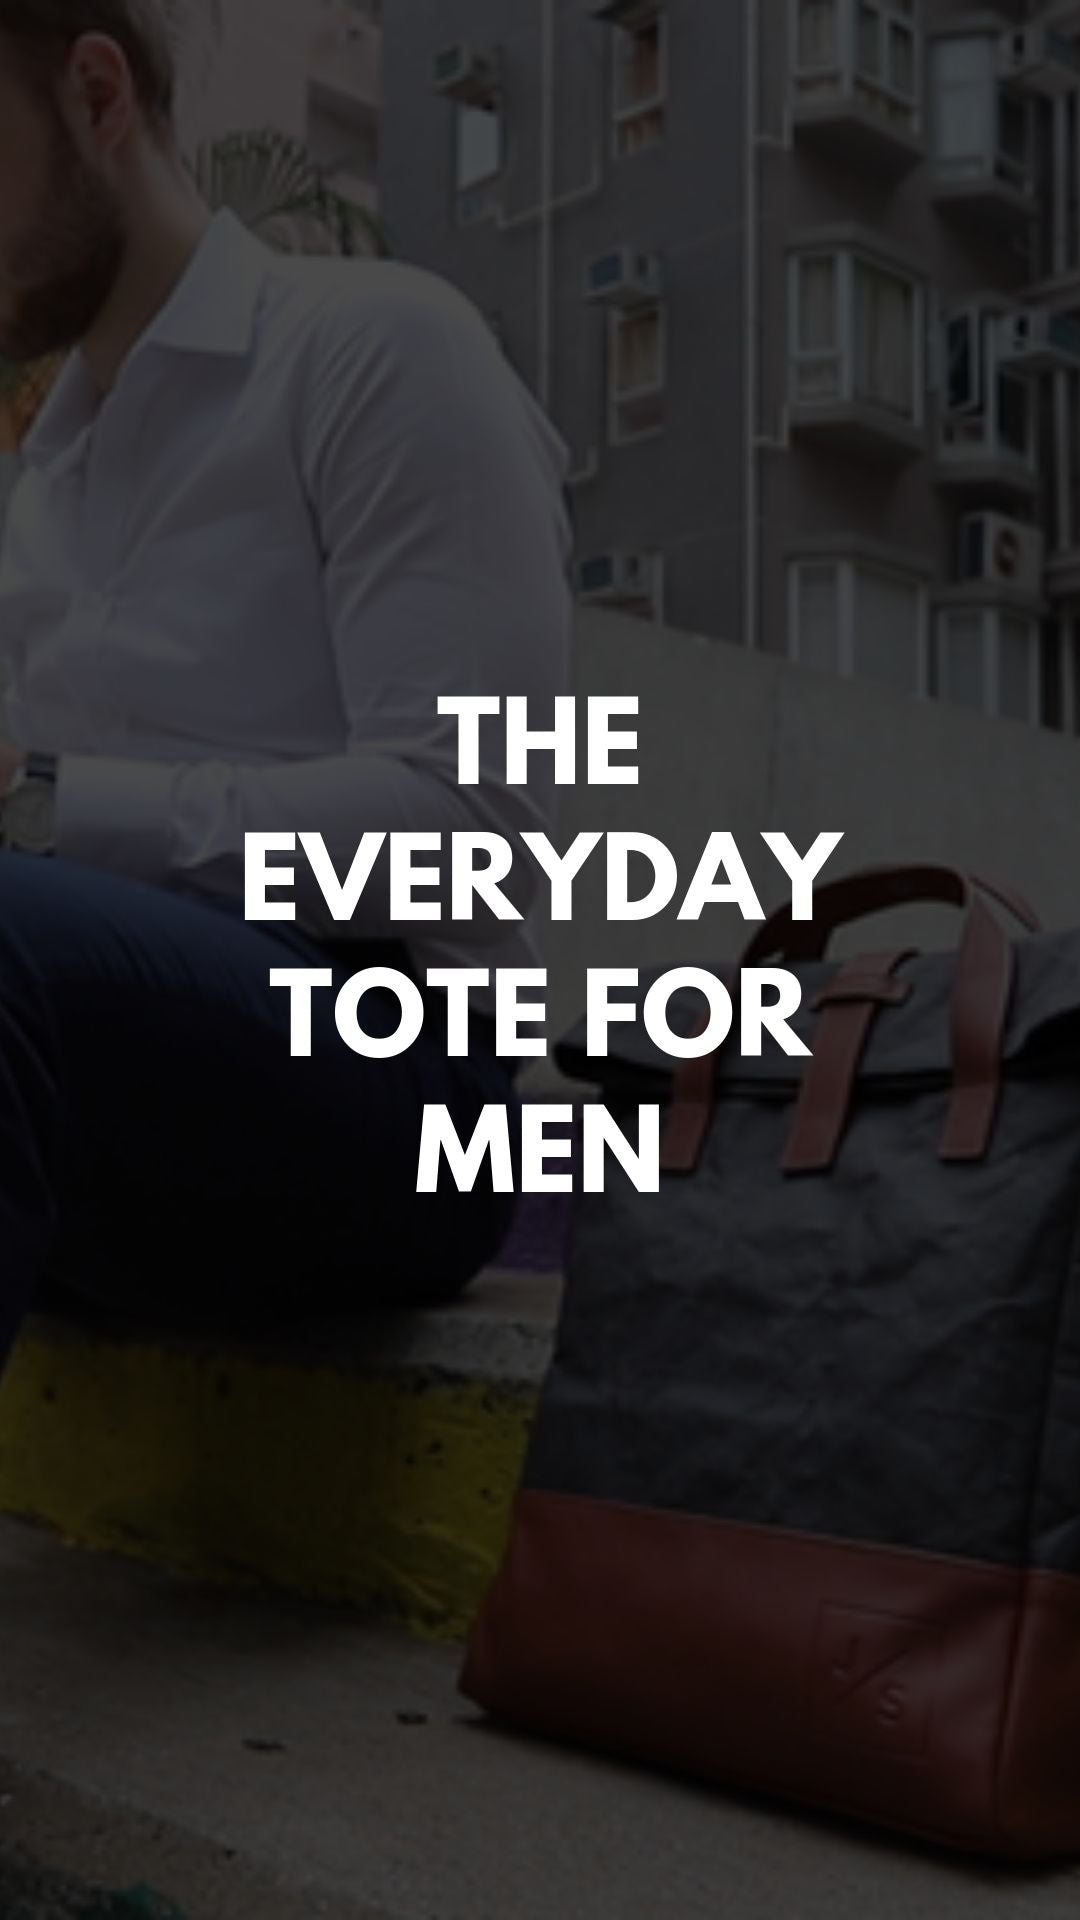 The Everyday Tote For Men